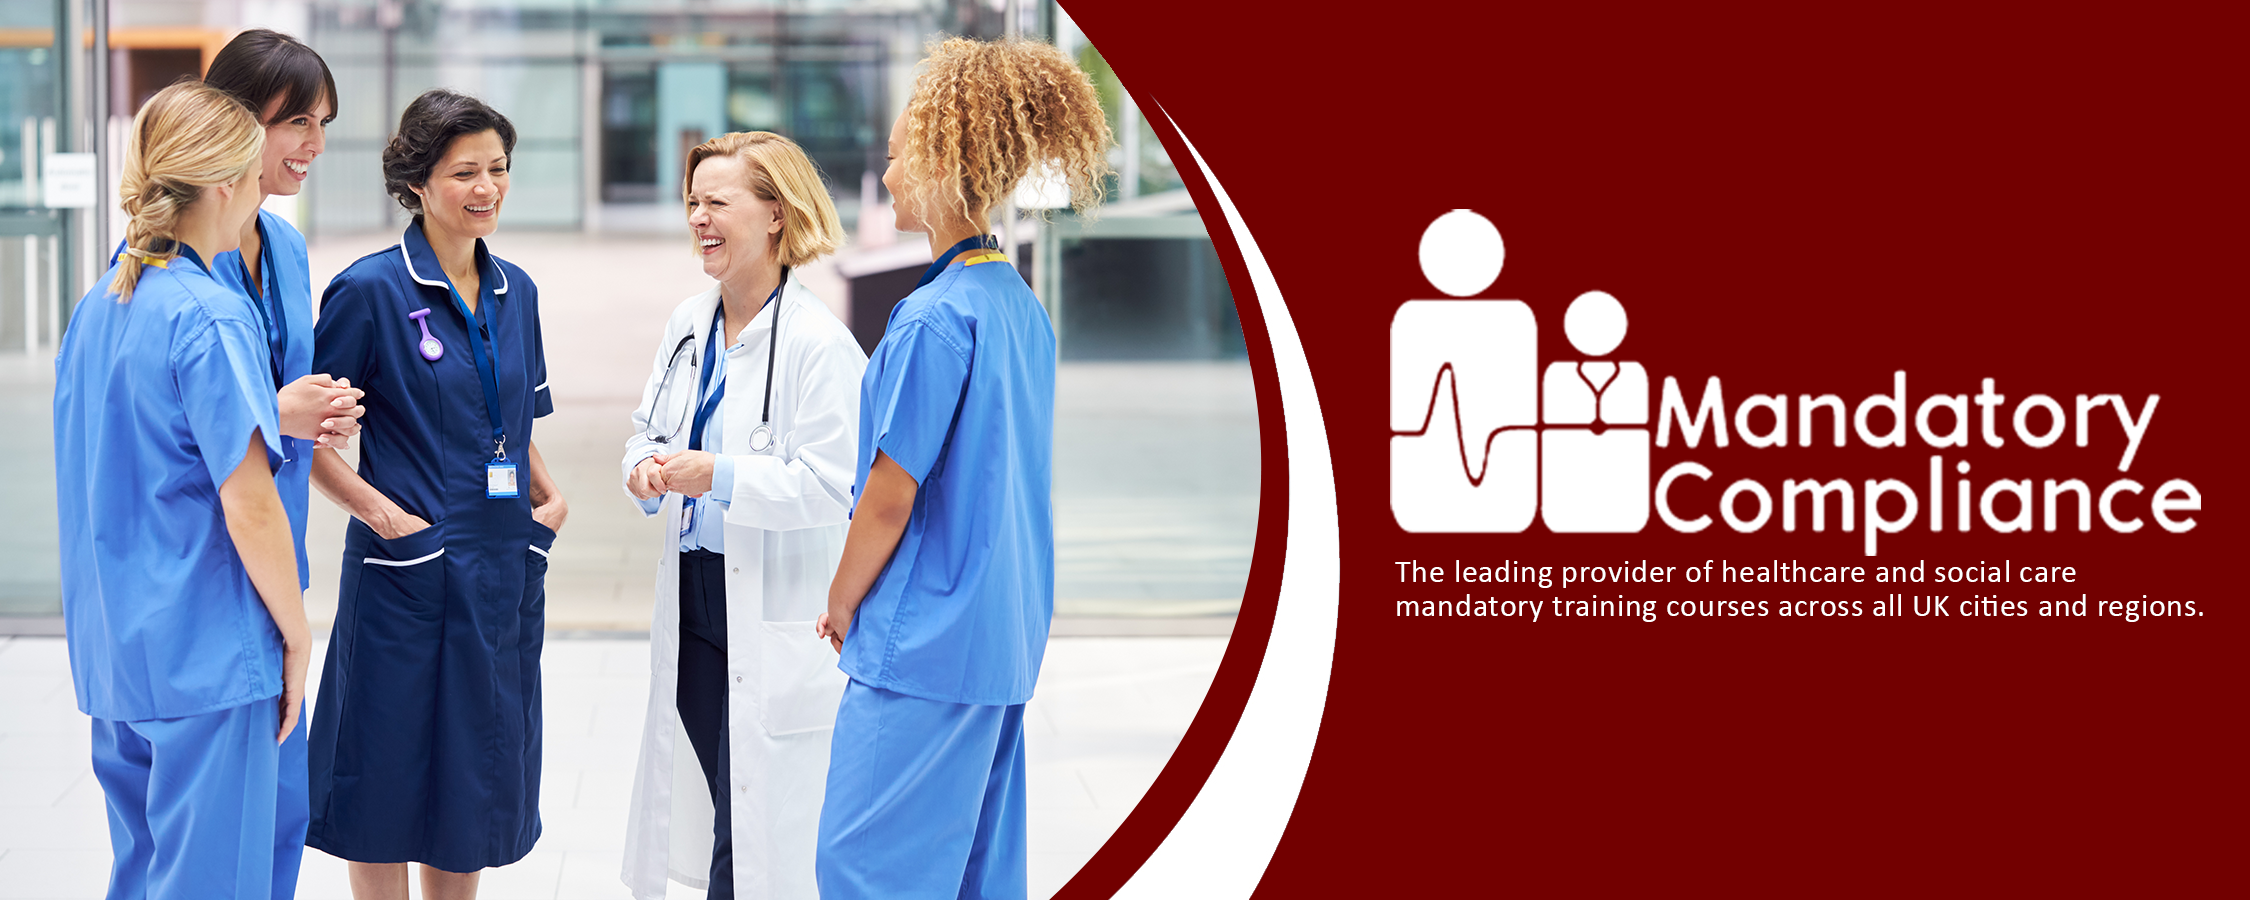 Medical Gas Supplies in Health and Care - E-Learning Courses - Mandatory Compliance UK -